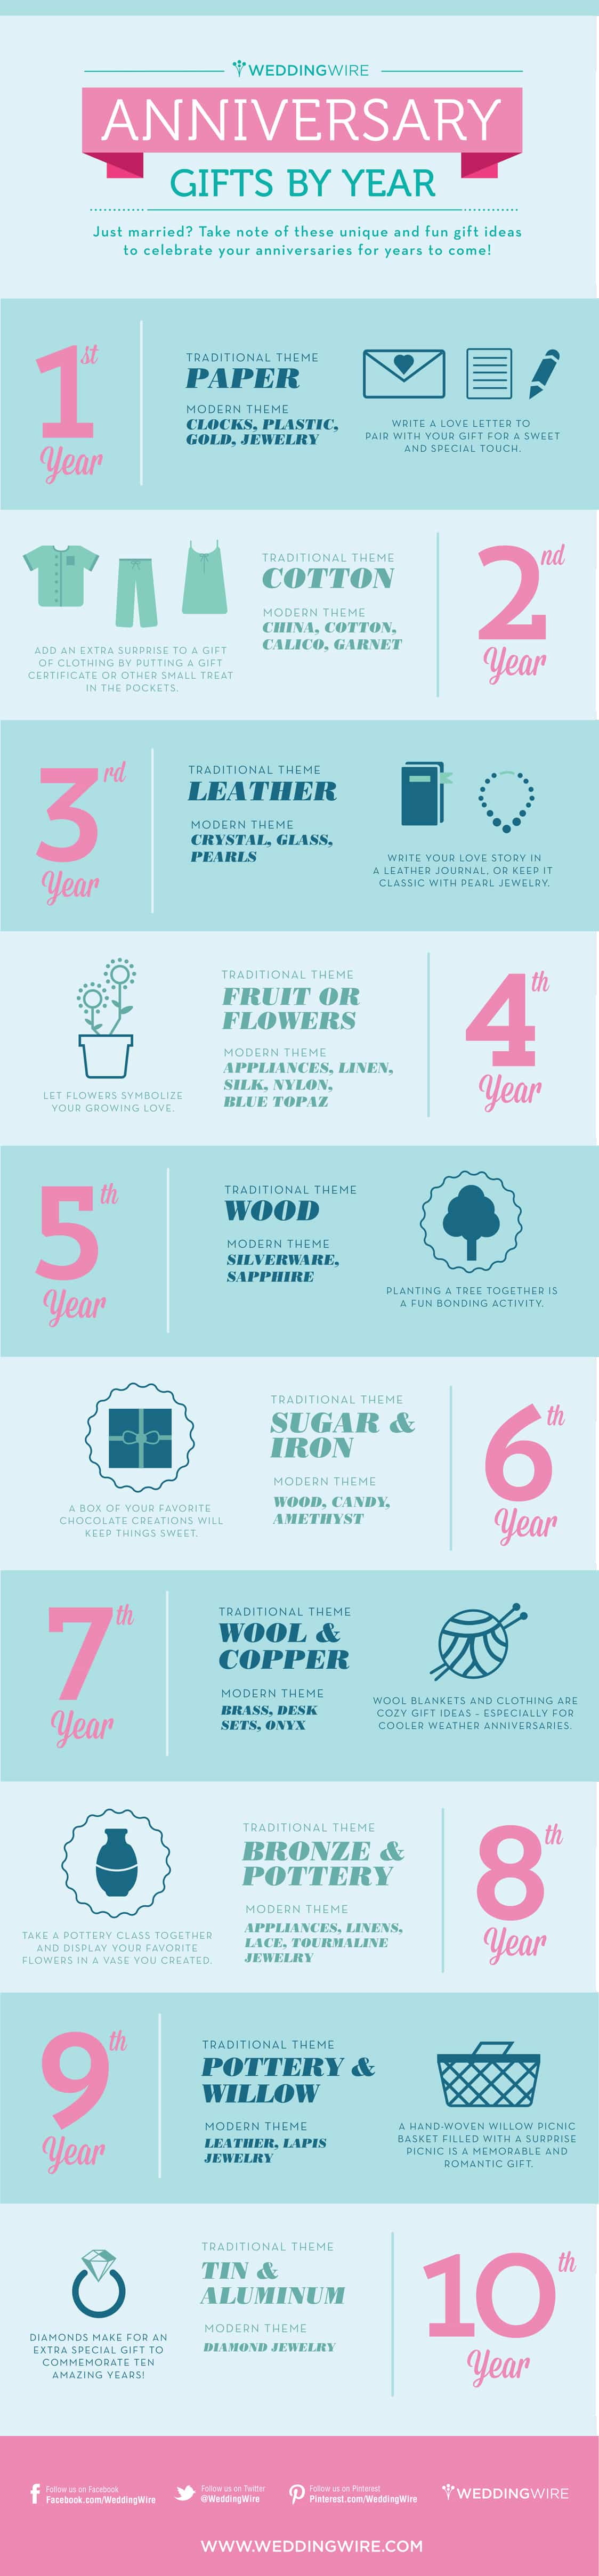 Wedding Anniversary Gifts by Year (Infographic)